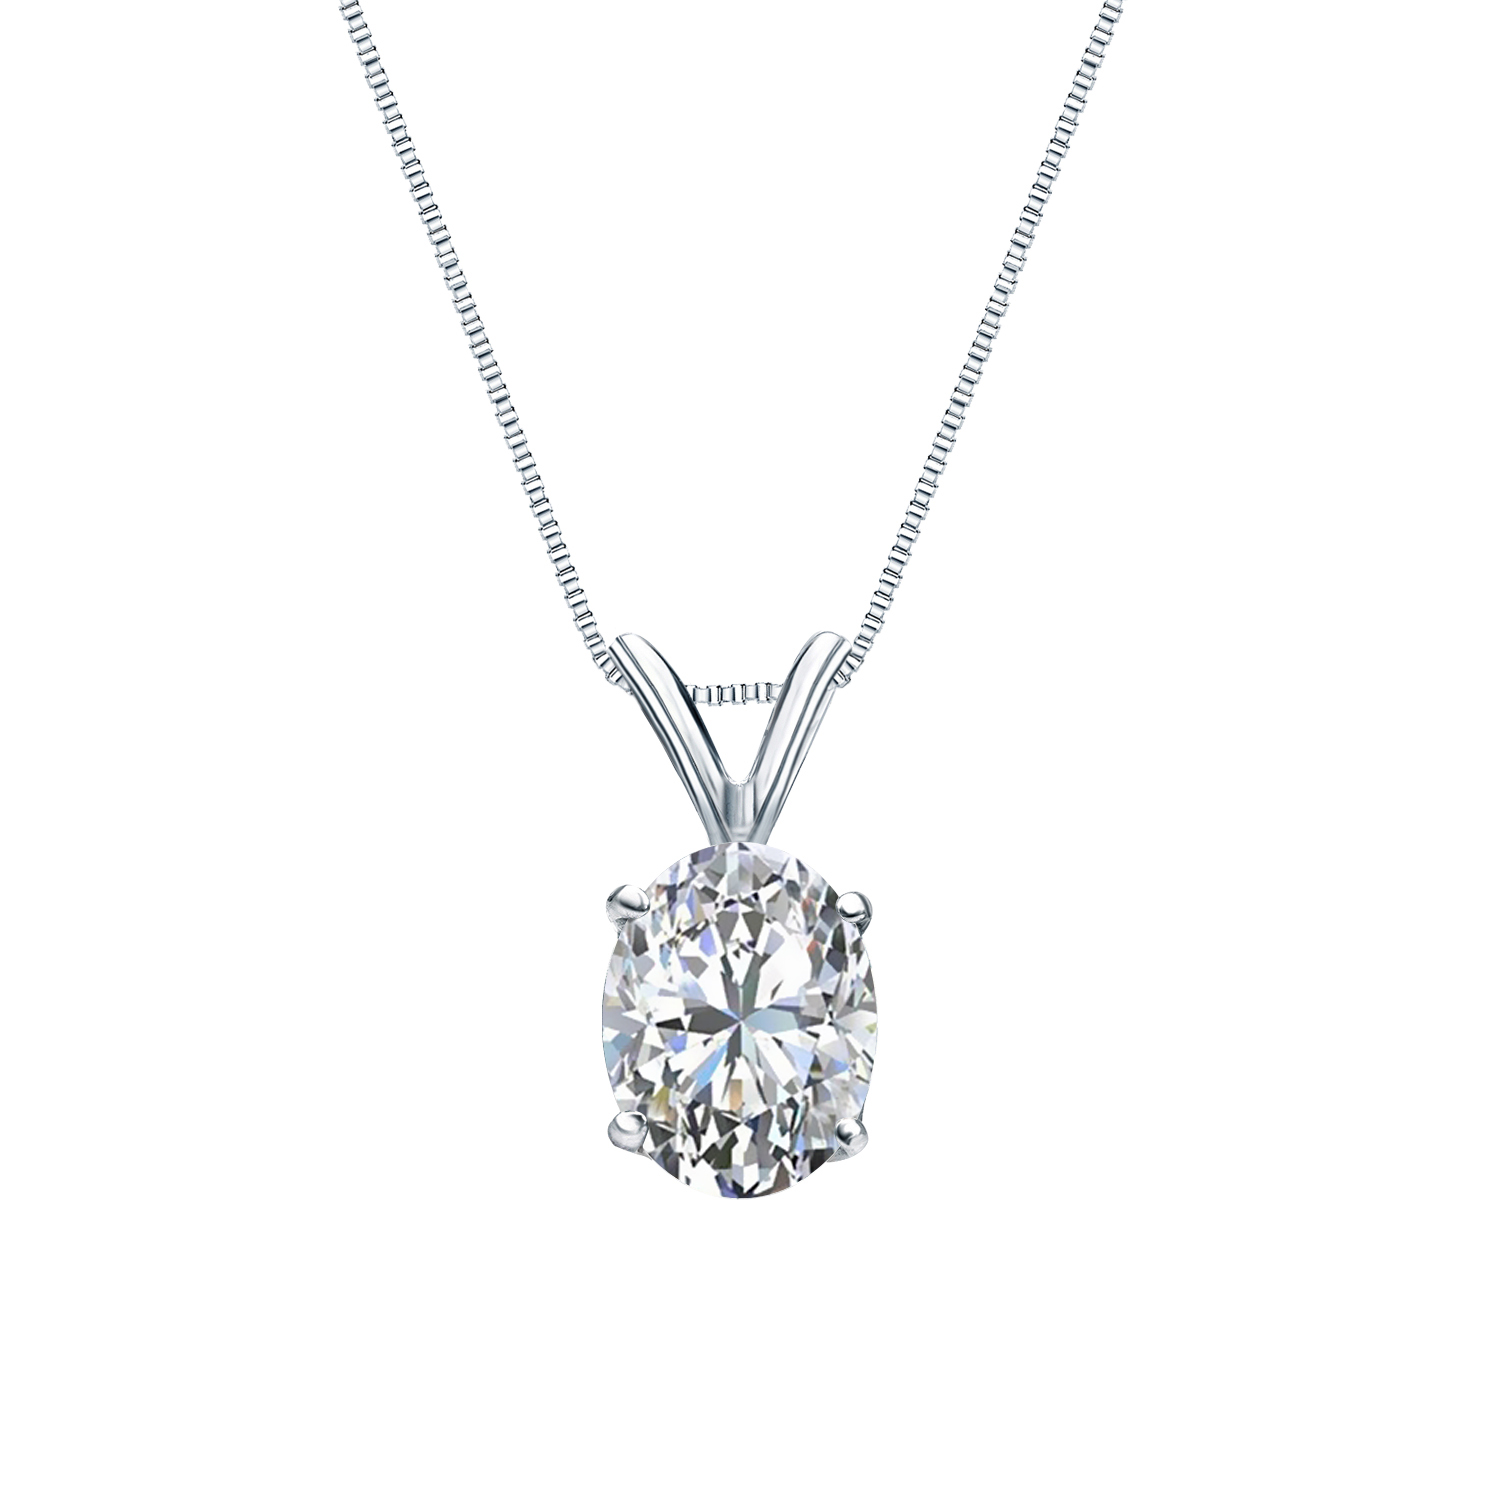 Certified 0.25 ct. tw. Oval Diamond Solitaire Pendant in 14k White Gold 4-Prong Basket (G-H, SI)